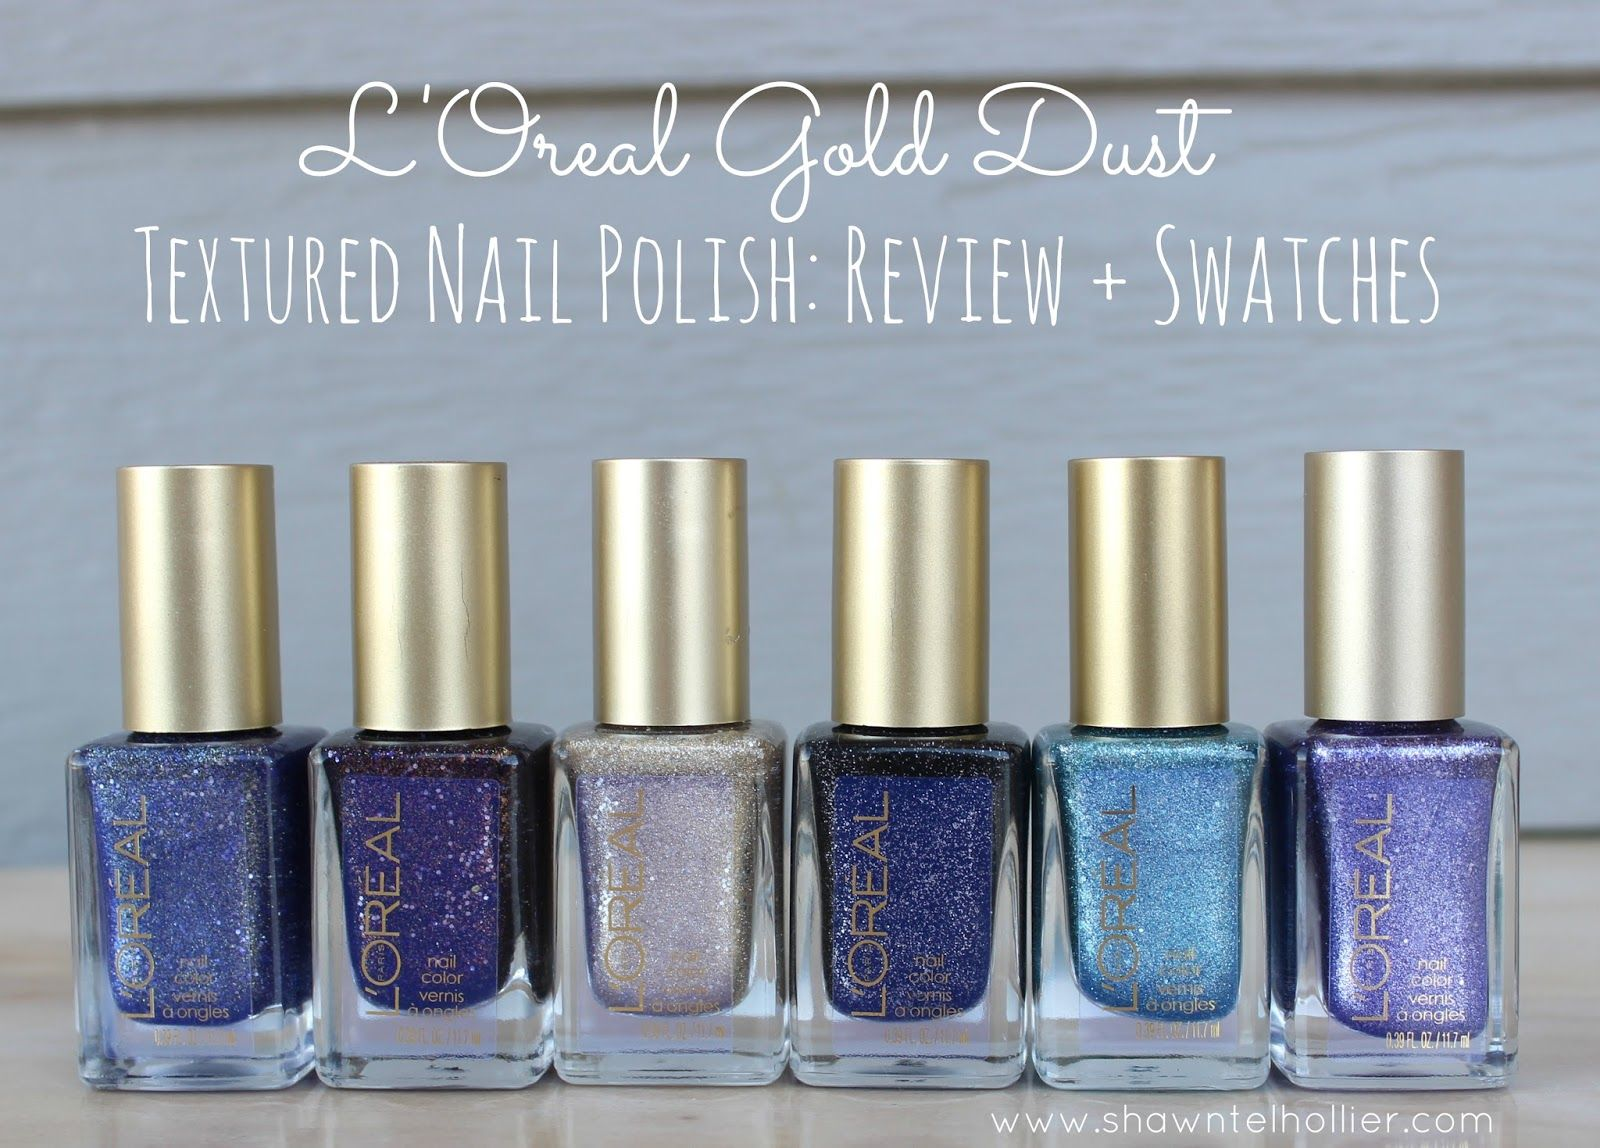 L\'Oreal Gold Dust Textured Nail Polish: Review and Swatches #Loreal ...